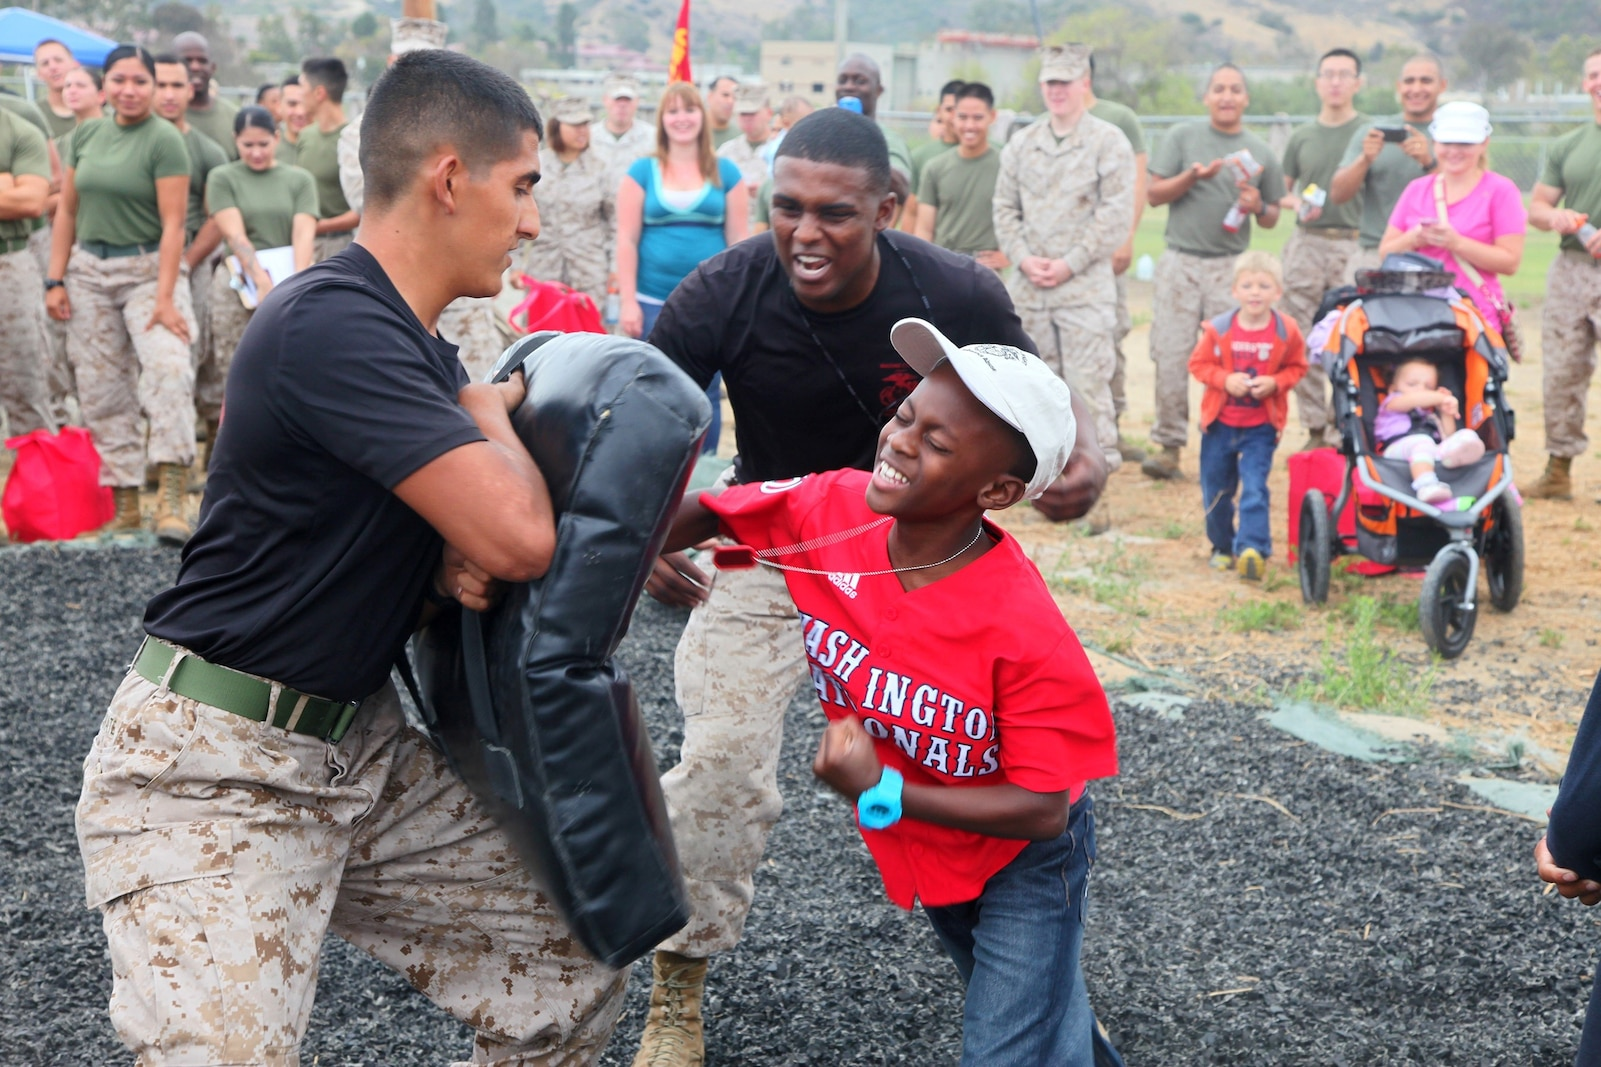 A Marine's son practices Marine Corps Martial Arts with Marines from 1st Supply Battalion, Combat Logistics Regiment 15, 1st Marine Logistics Group, during the battalion's Johnny Wayne Day aboard Camp Pendleton, Calif., Aug. 9, 2013. At the family day, the children of Marines and sailors participated in a number of events that simulated what their parents might experience on a day-to-day basis as a member of the military.